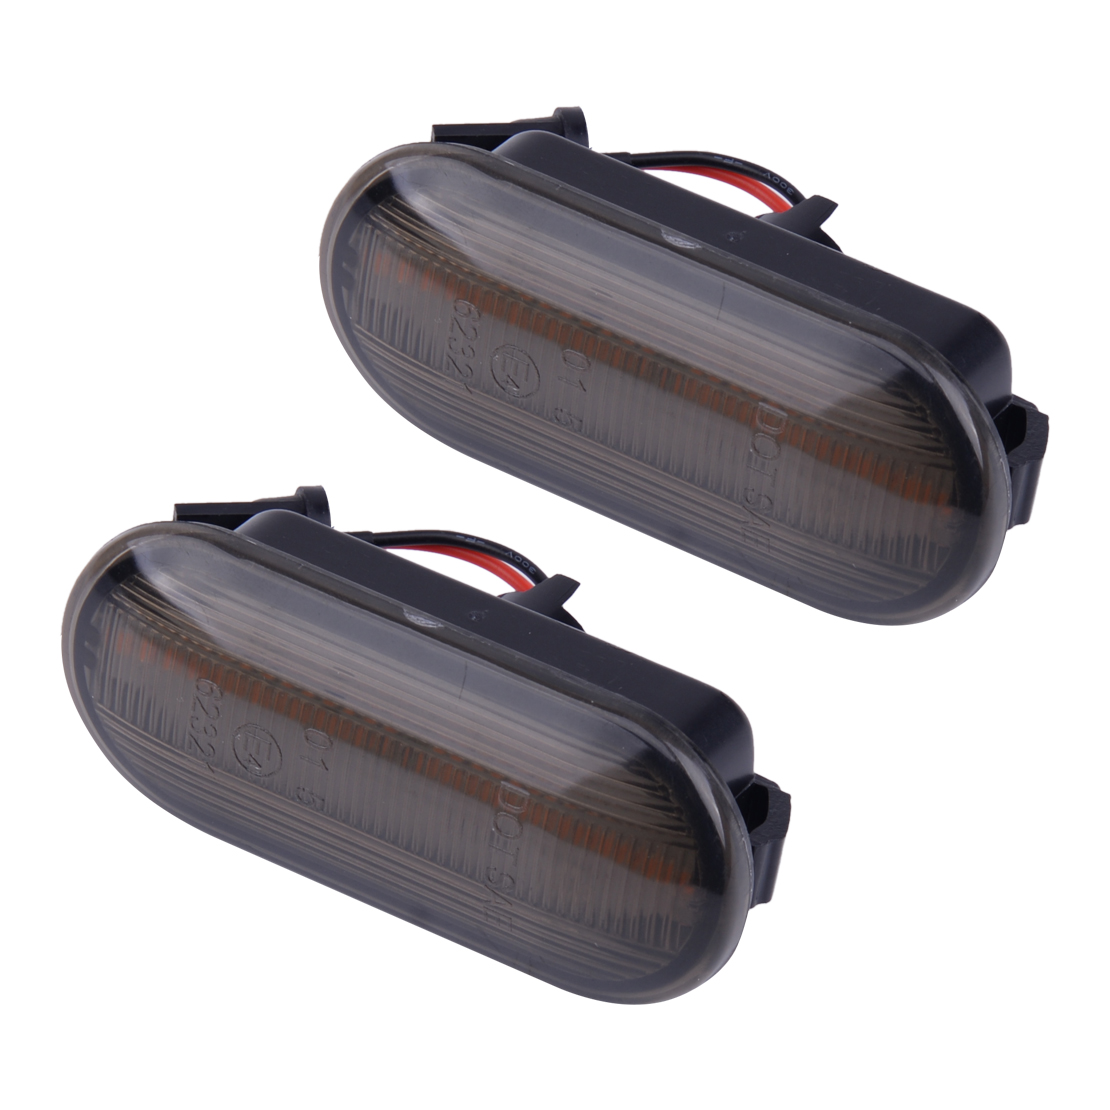 CITALL 2PCS 3W 12V Dynamic Flowing <font><b>LED</b></font> Side Marker Signal <font><b>Light</b></font> Fit For <font><b>VW</b></font> Golf Jetta Bora GTI R32 MK4 <font><b>Passat</b></font> <font><b>B5</b></font> New Beetle 2002 image